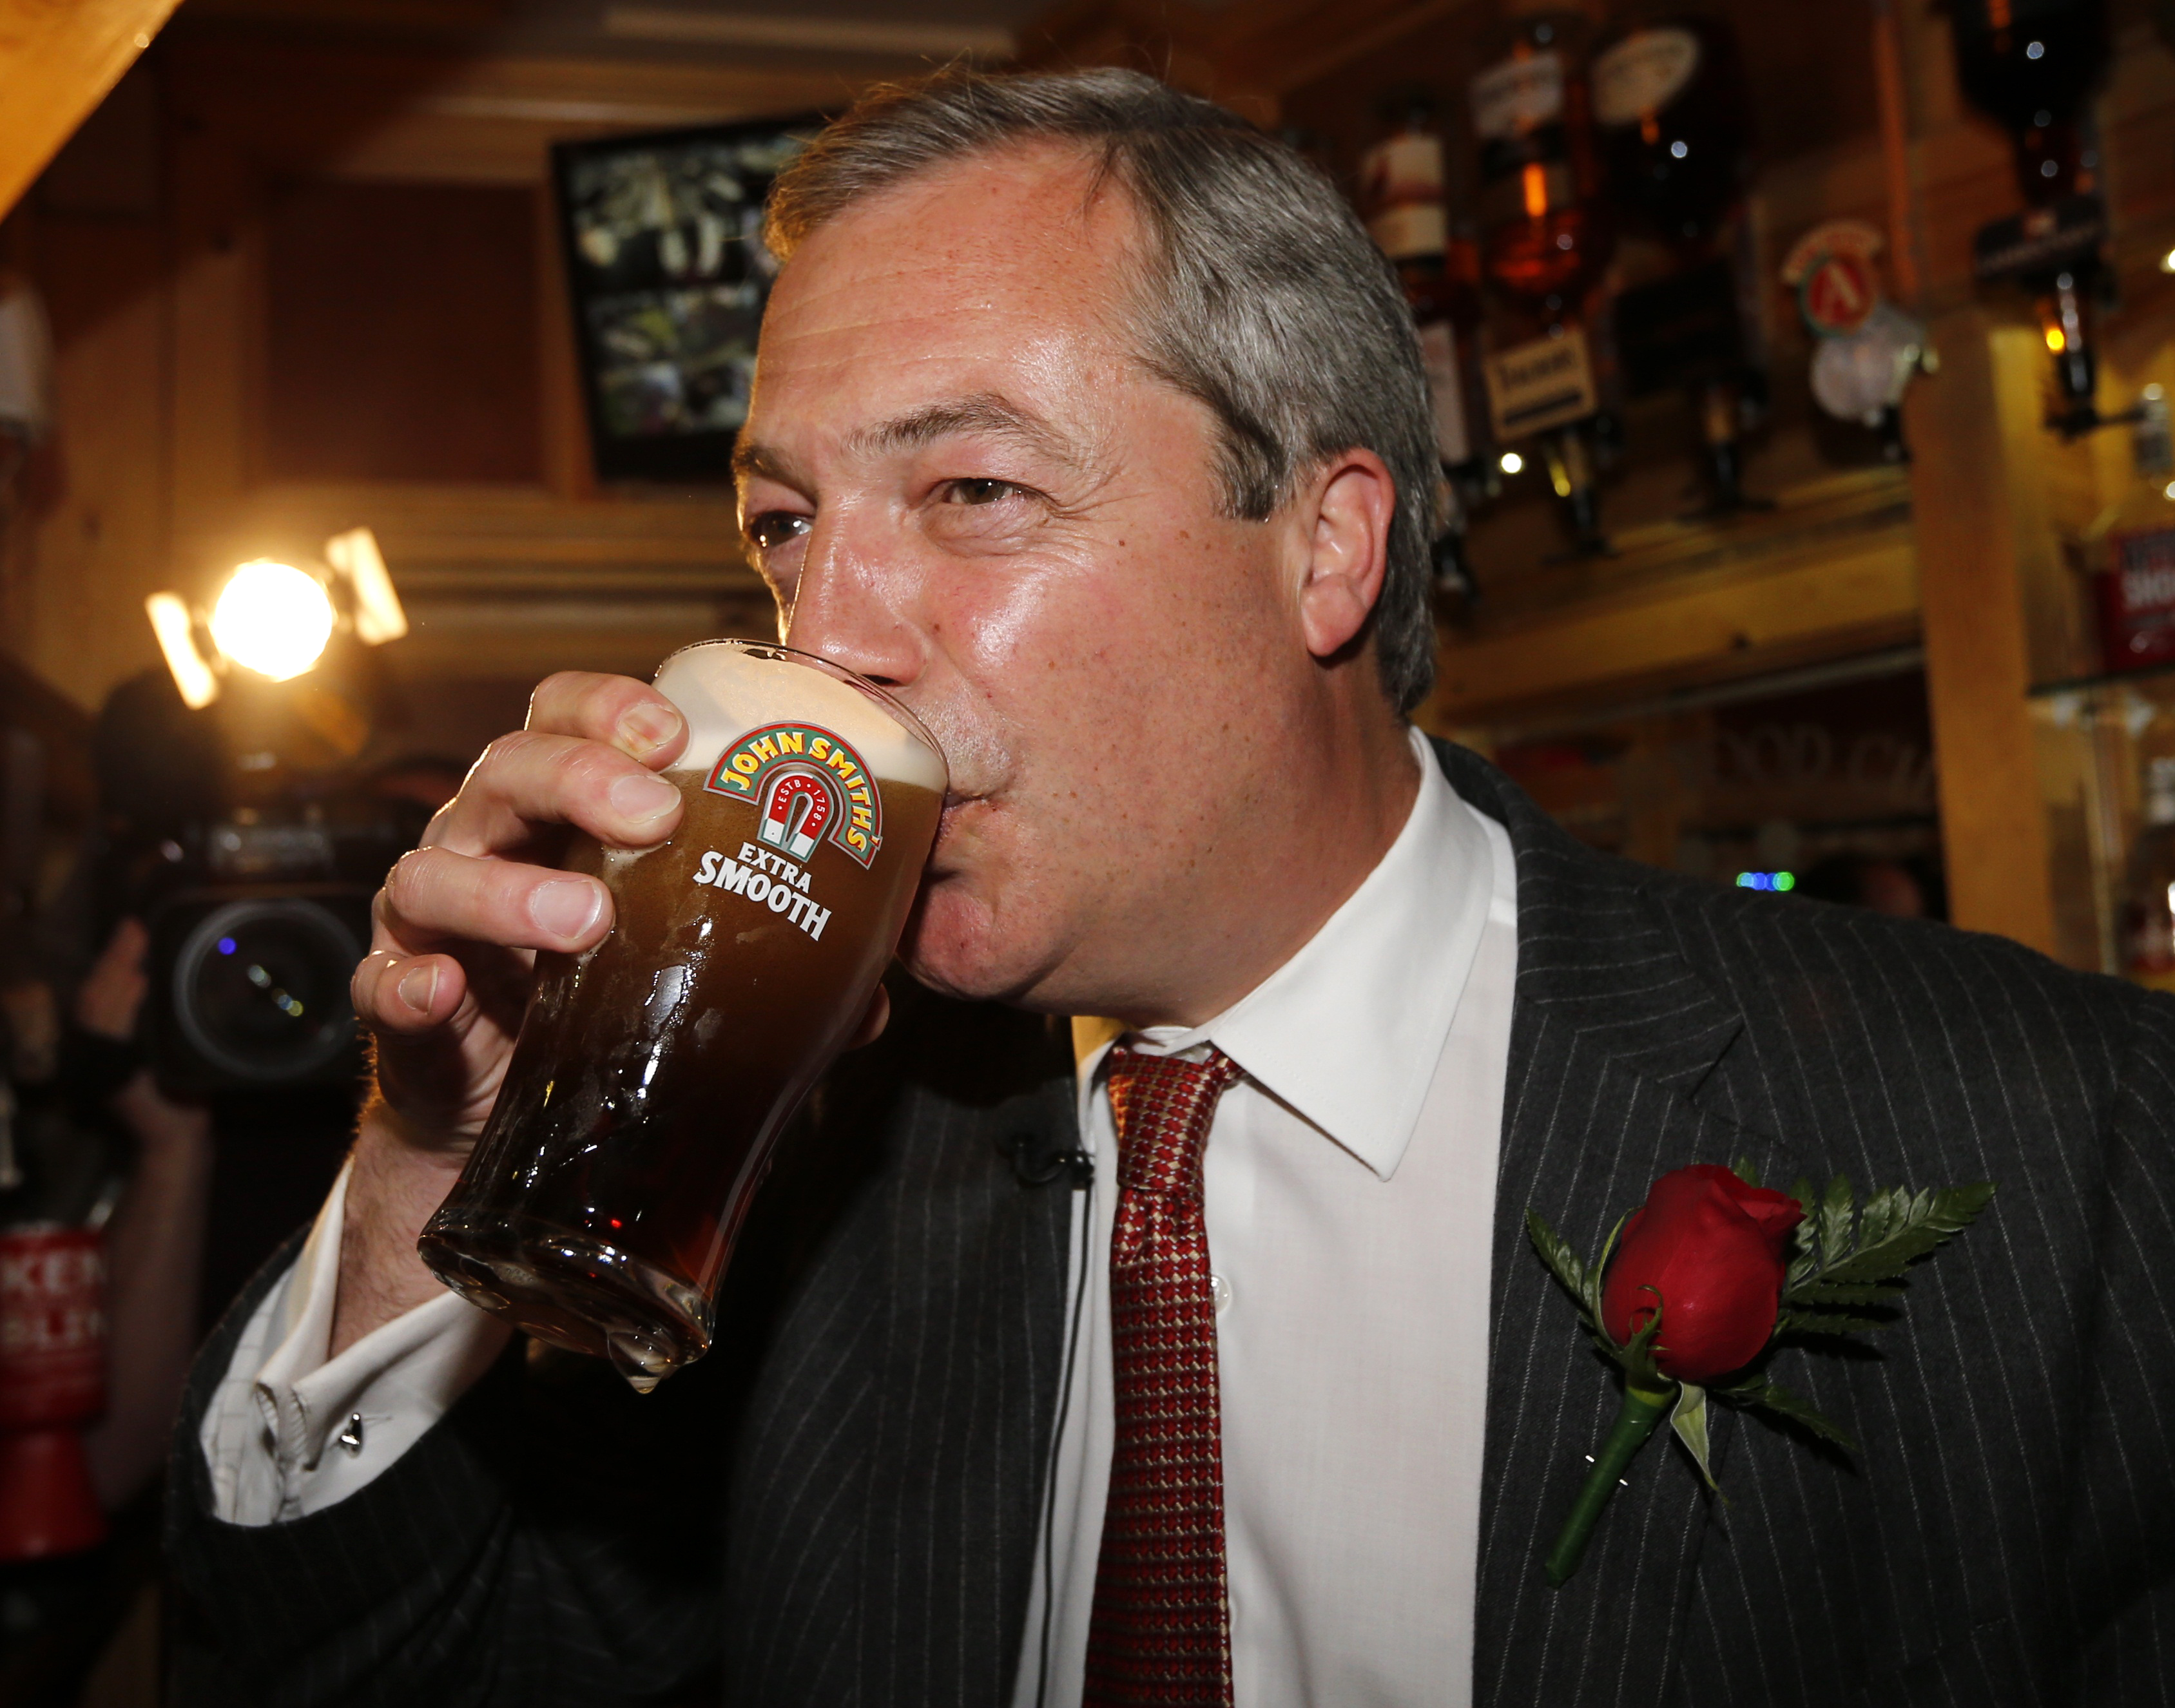 United Kingdom Independence Party (UKIP) leader Nigel Farage enjoys a pint of beer during a visit to mark St George's day at the Northwood Club in Ramsgate, southern England, April 23, 2015